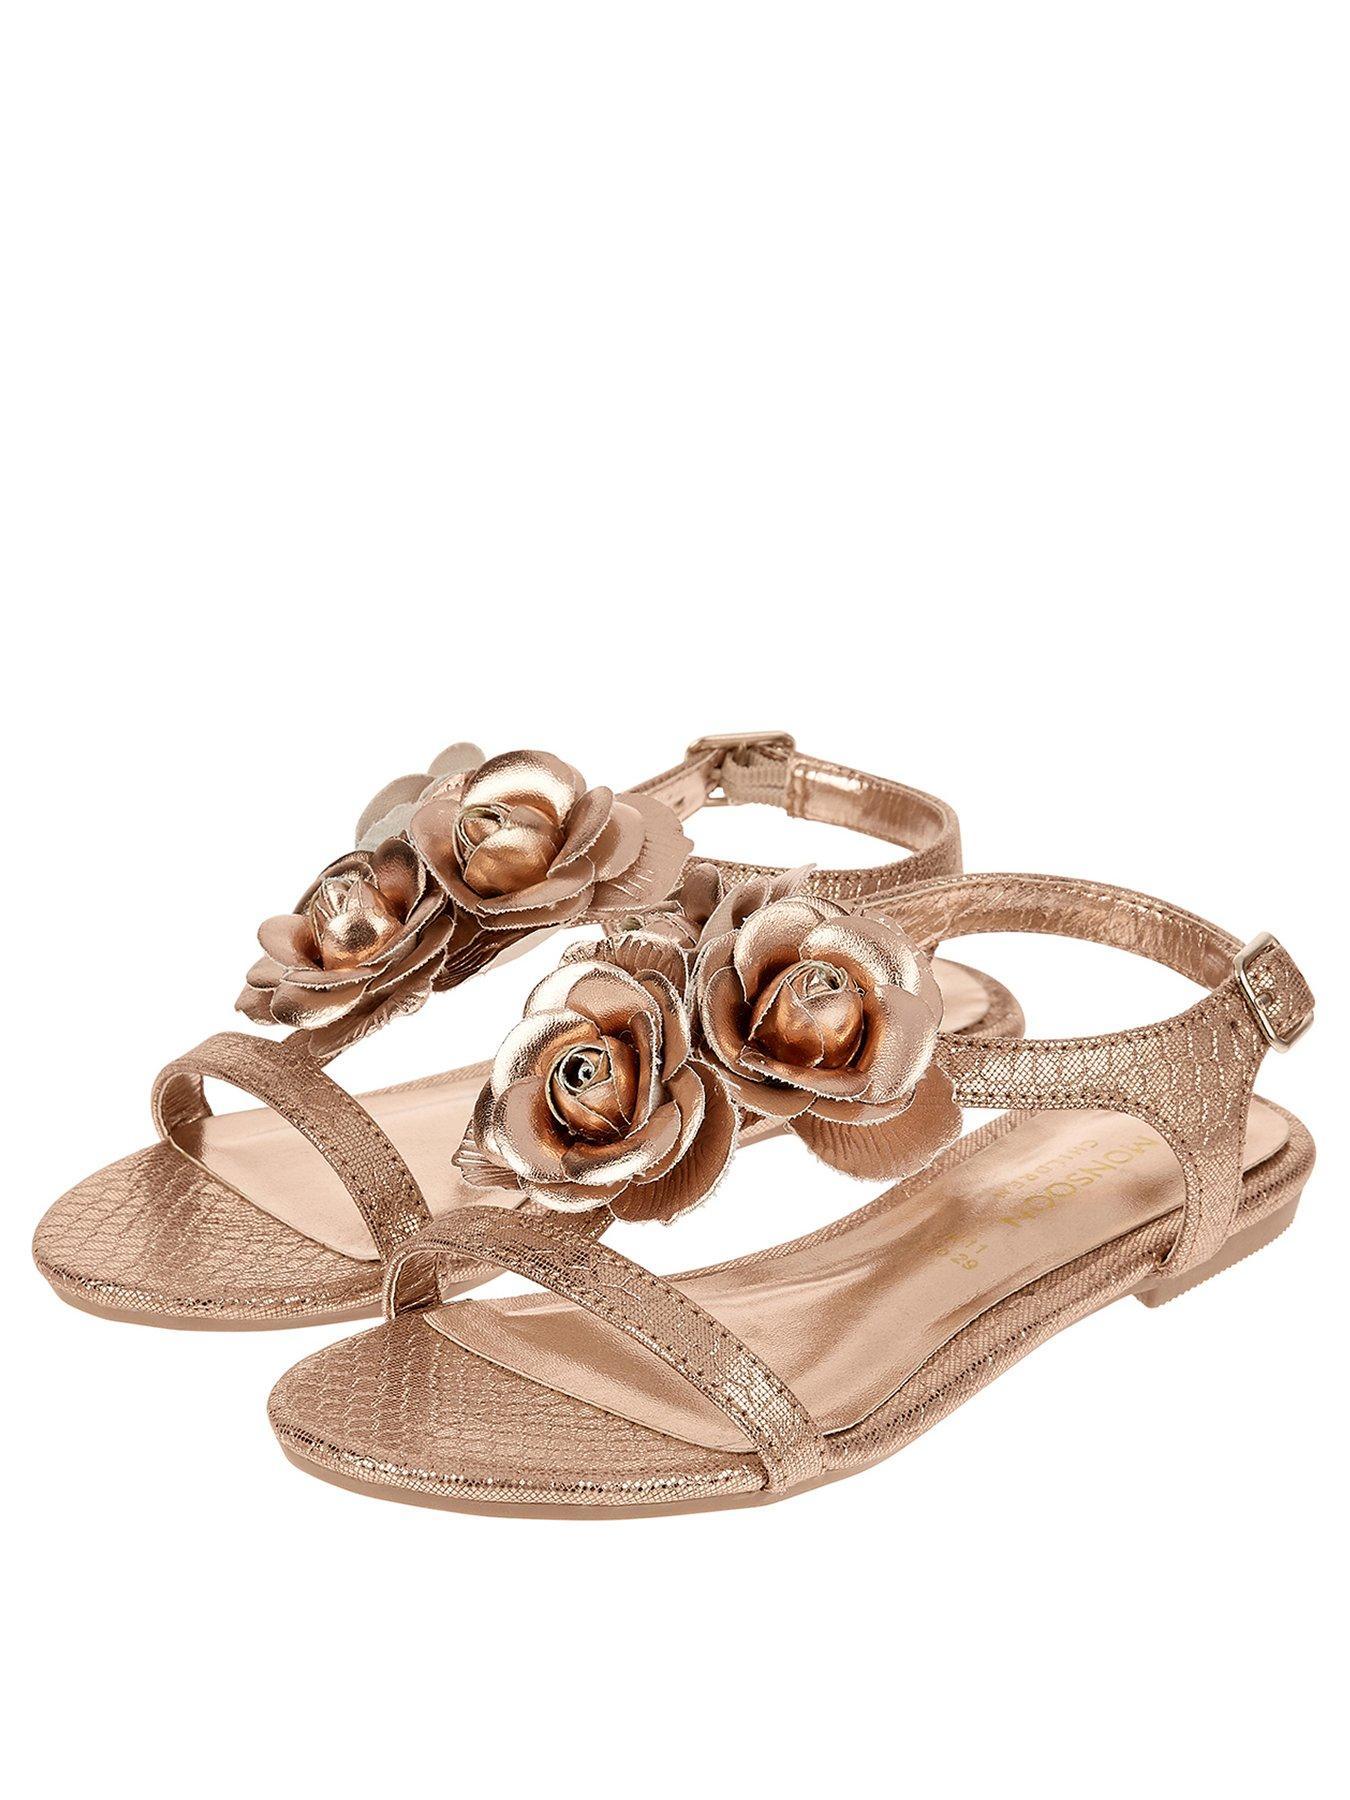 Kids' Clothes, Shoes & Accs. Sunny Brand New Monsson Girls Gold Sandals Size 12 Girls' Shoes